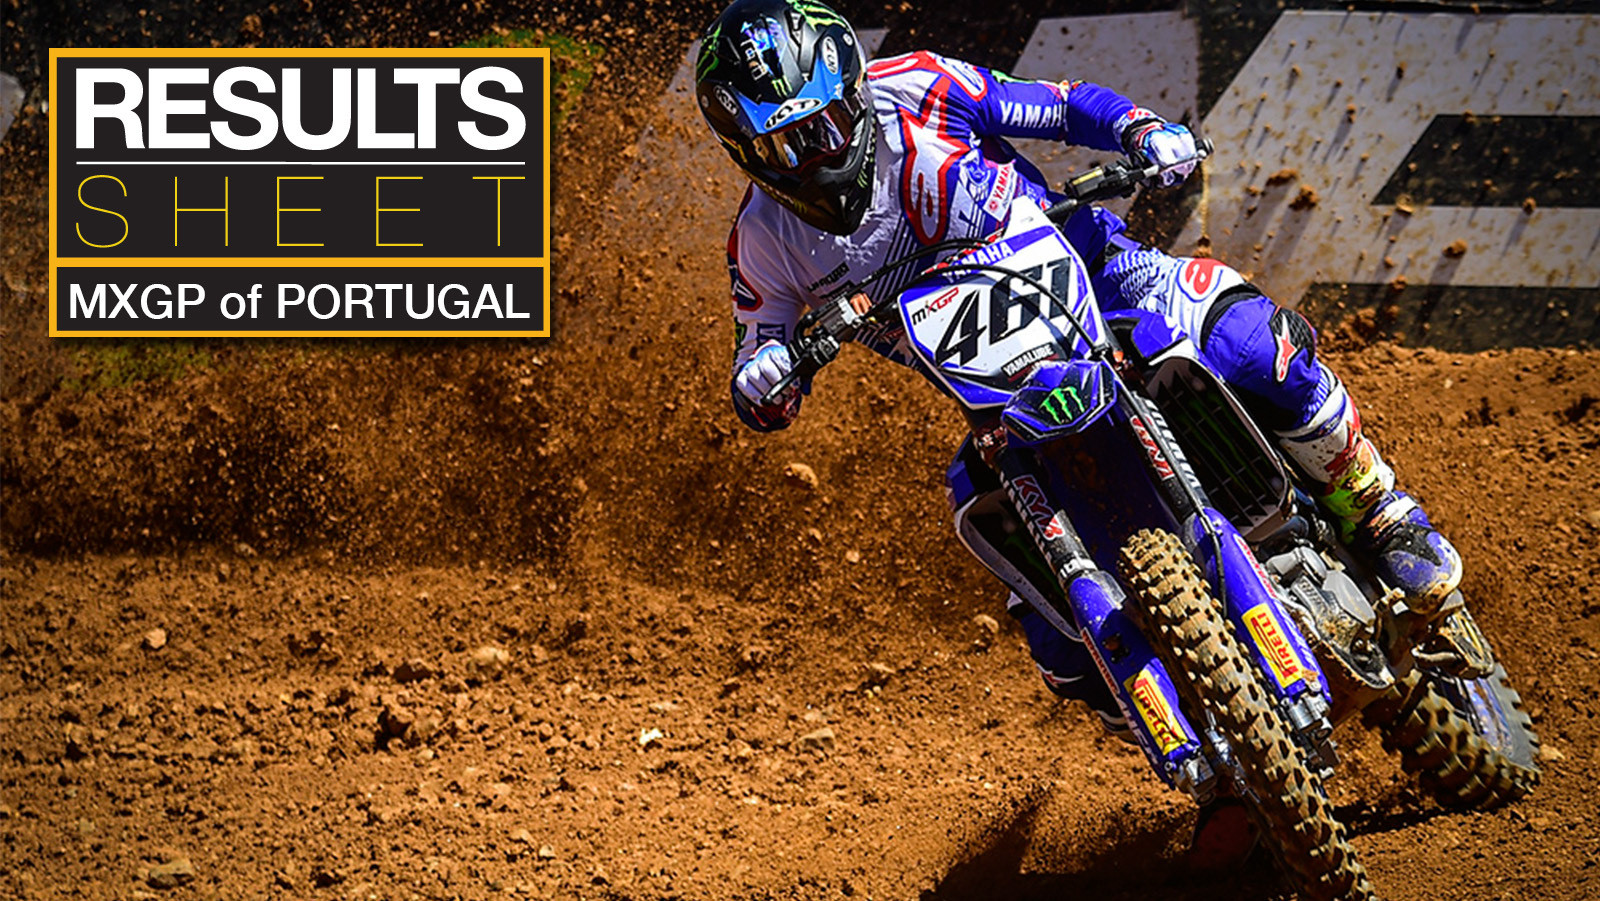 Results Sheet: 2017 MXGP of Portugal